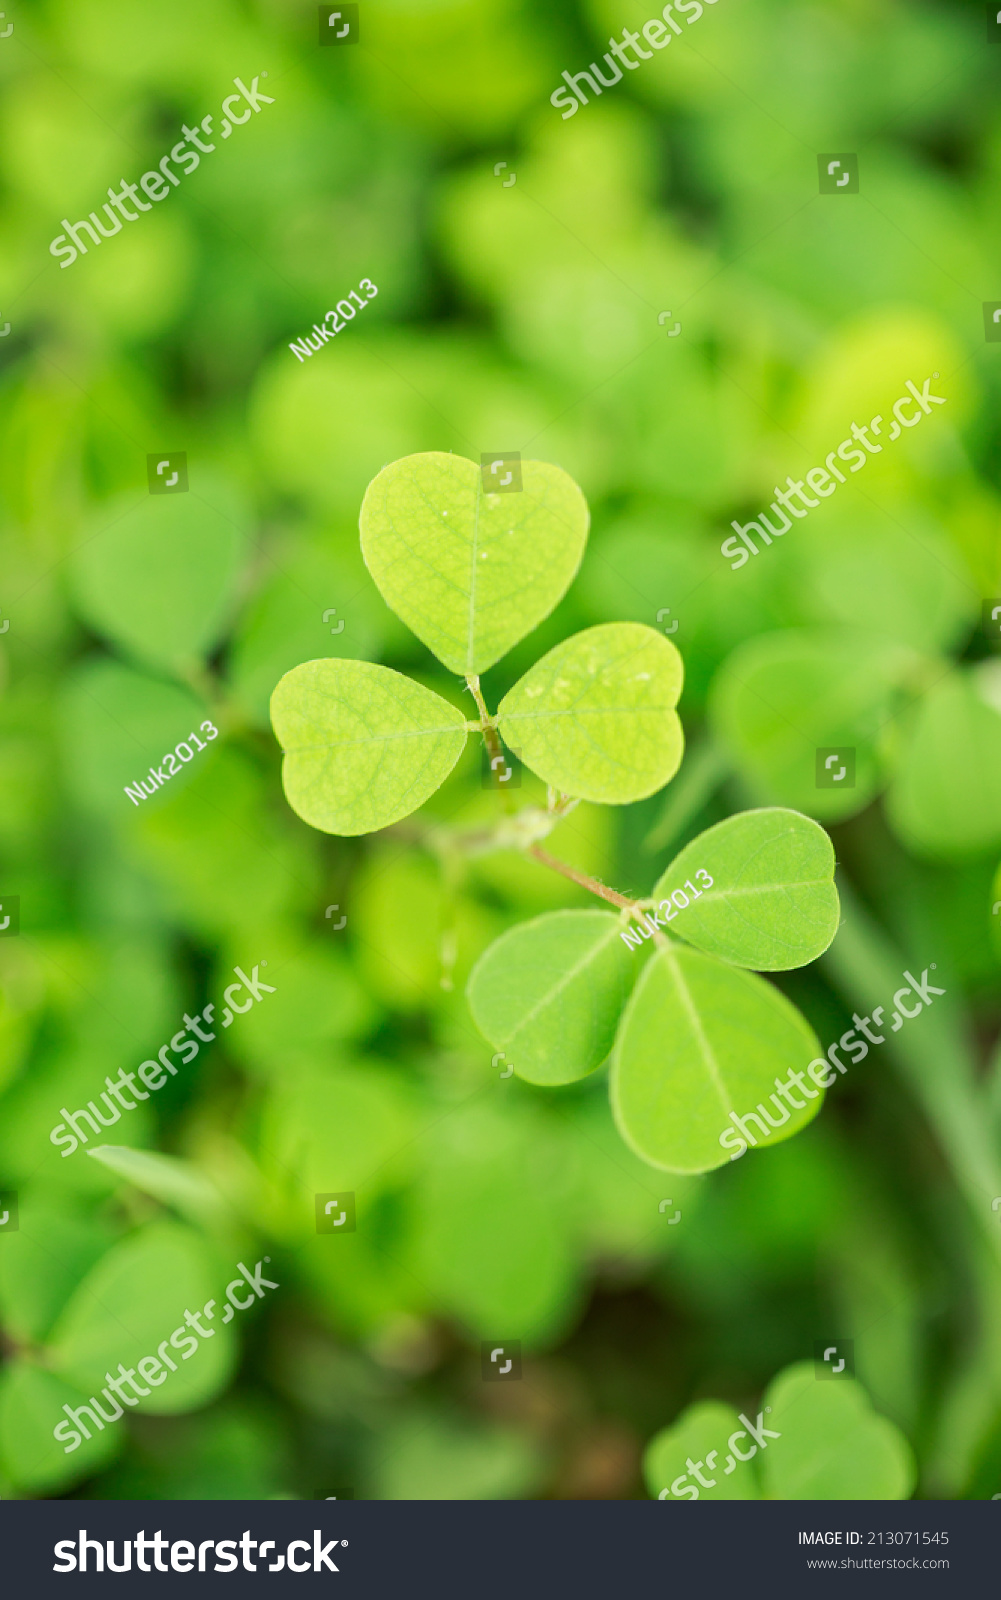 heart shape leaf small green plant stock photo 213071545 shutterstock. Black Bedroom Furniture Sets. Home Design Ideas